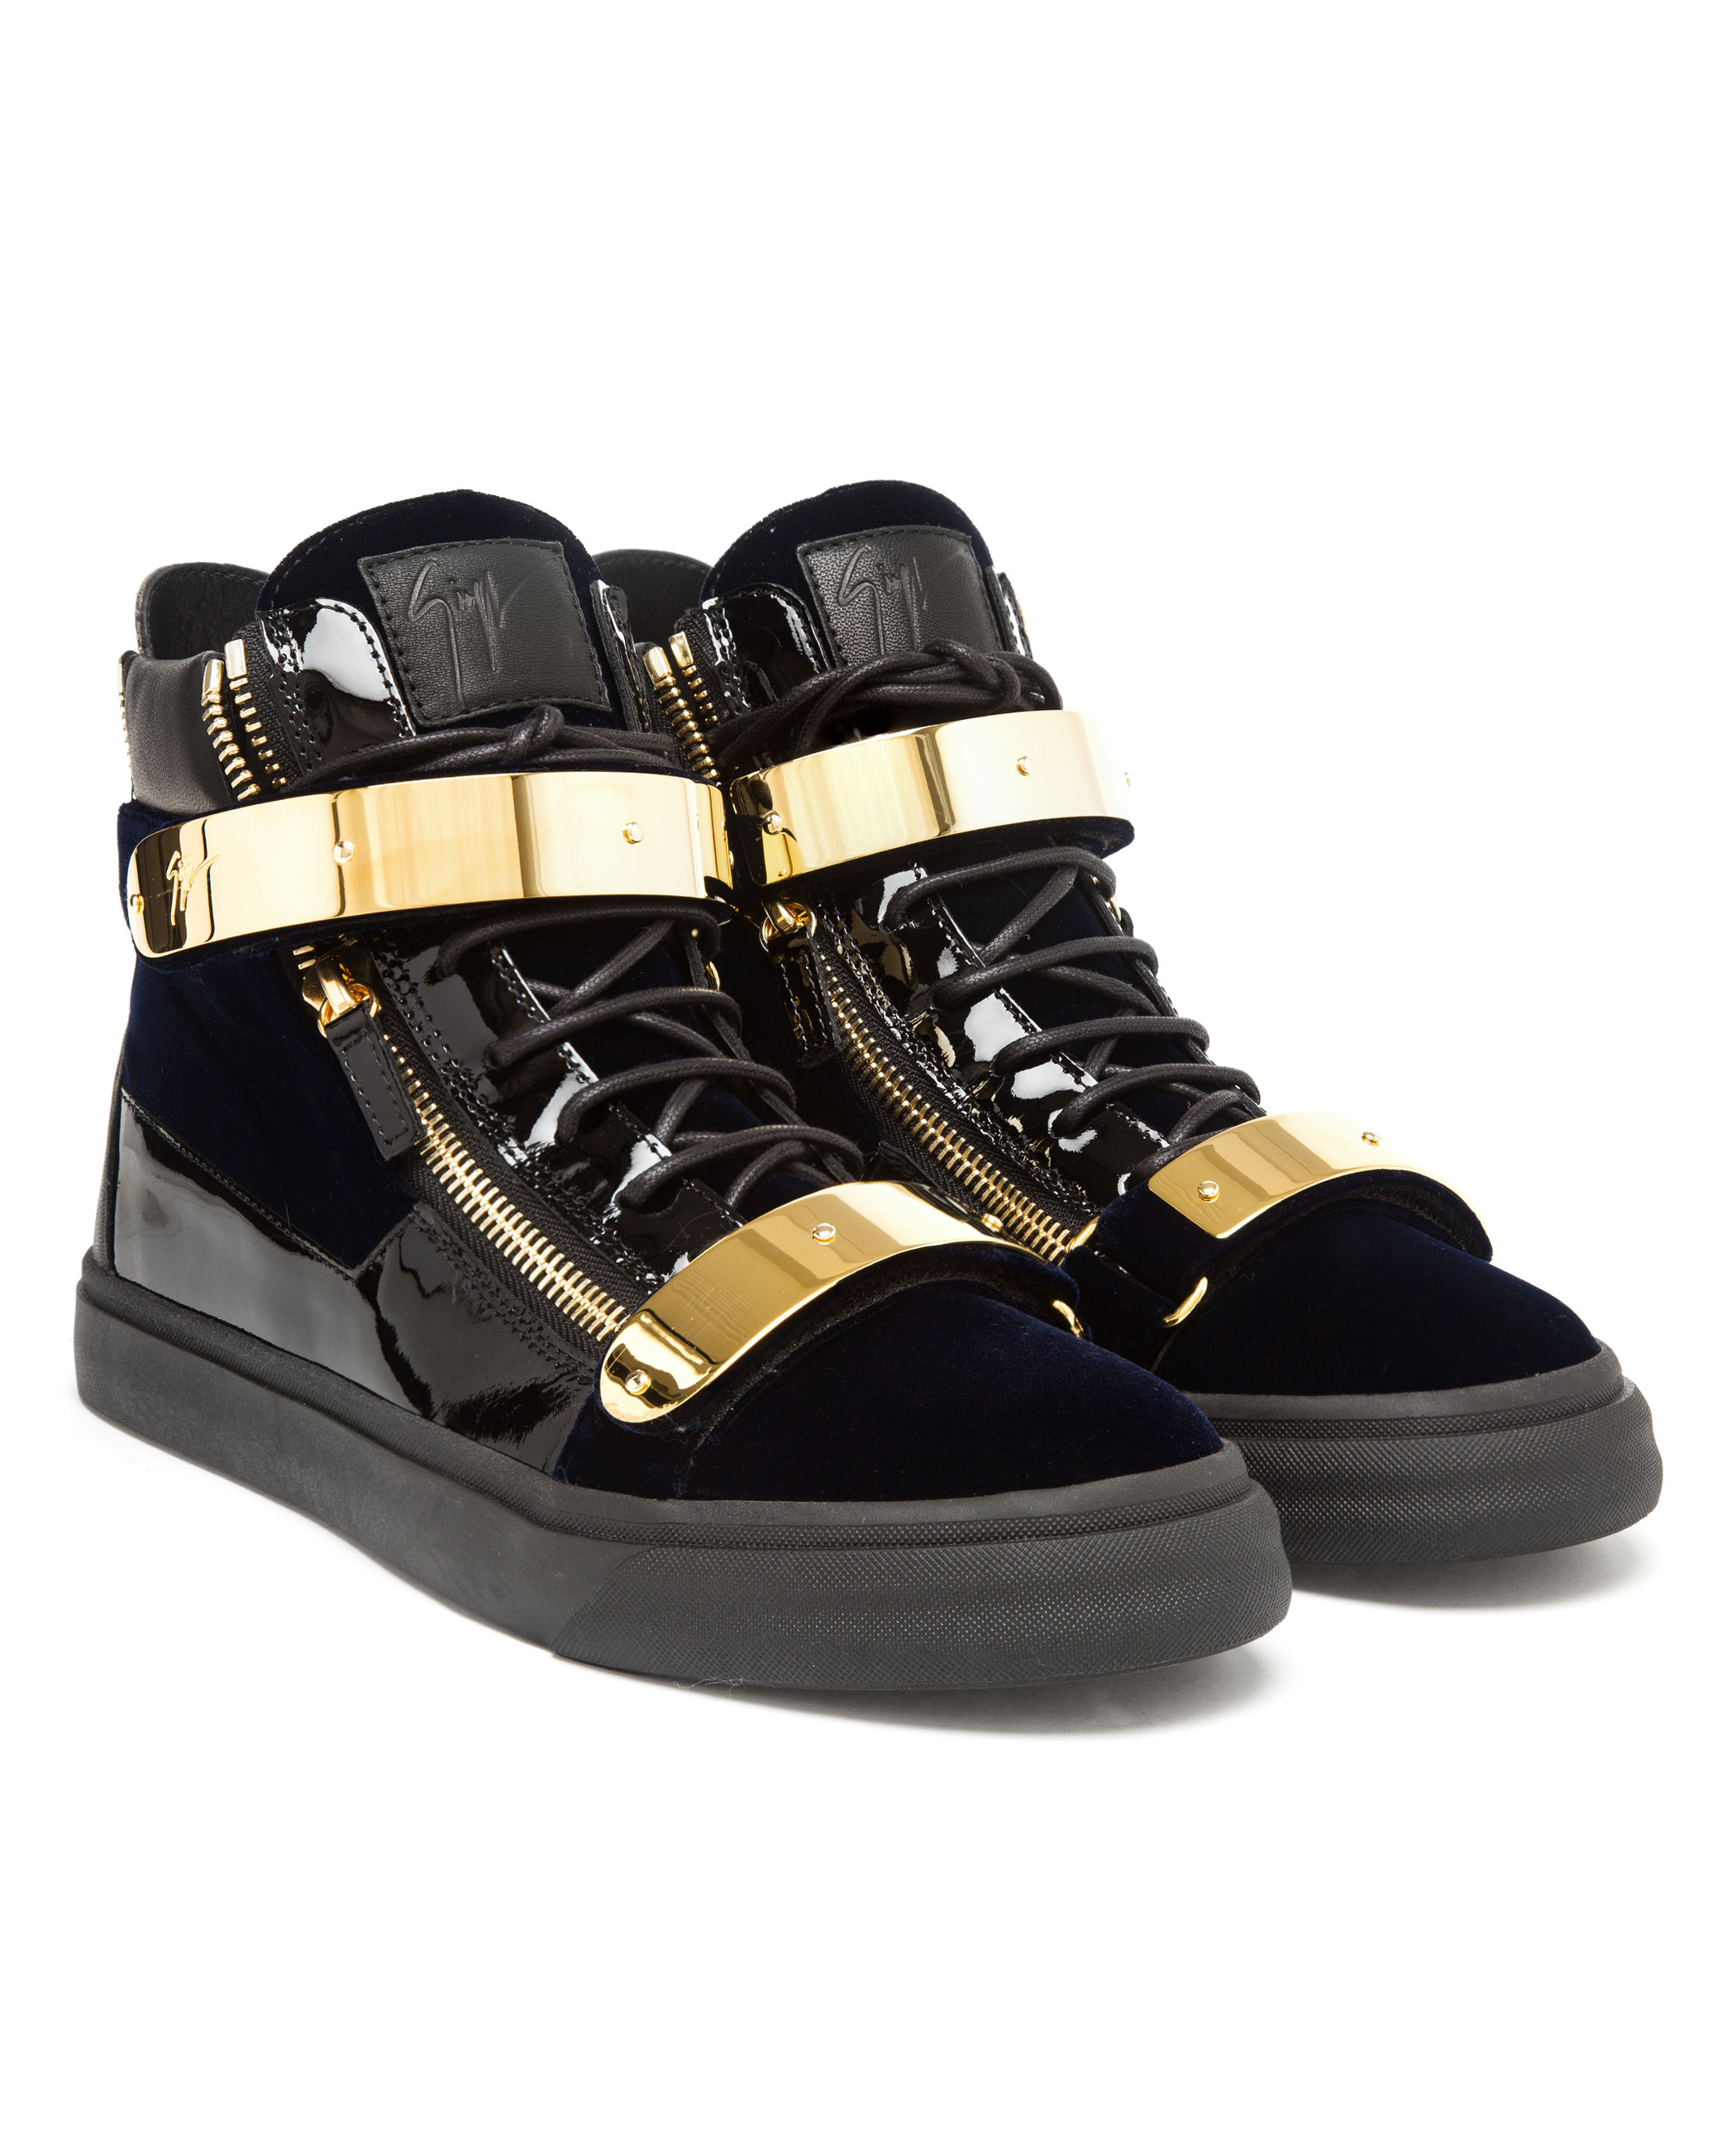 Giuseppe zanotti London Croc-embossed High-top Sneakers in ...